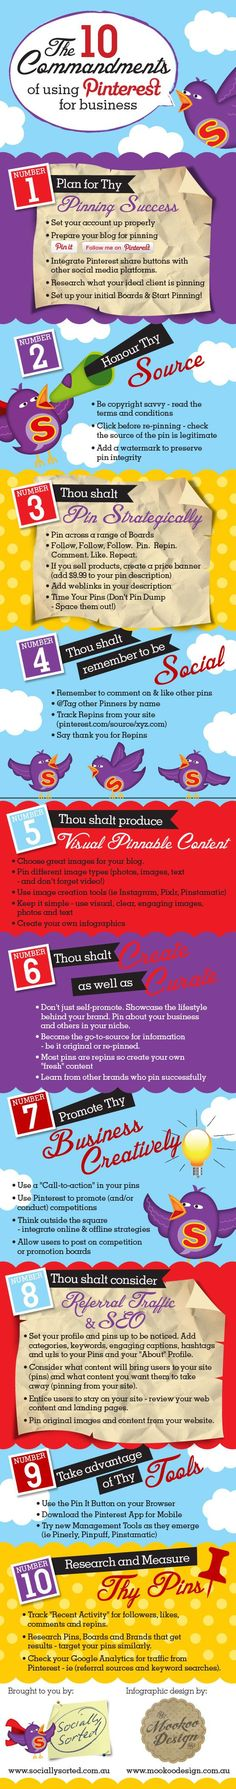 The 10 Commandments of Using #Pinterest for Business - Shared by #borntobesocial, France